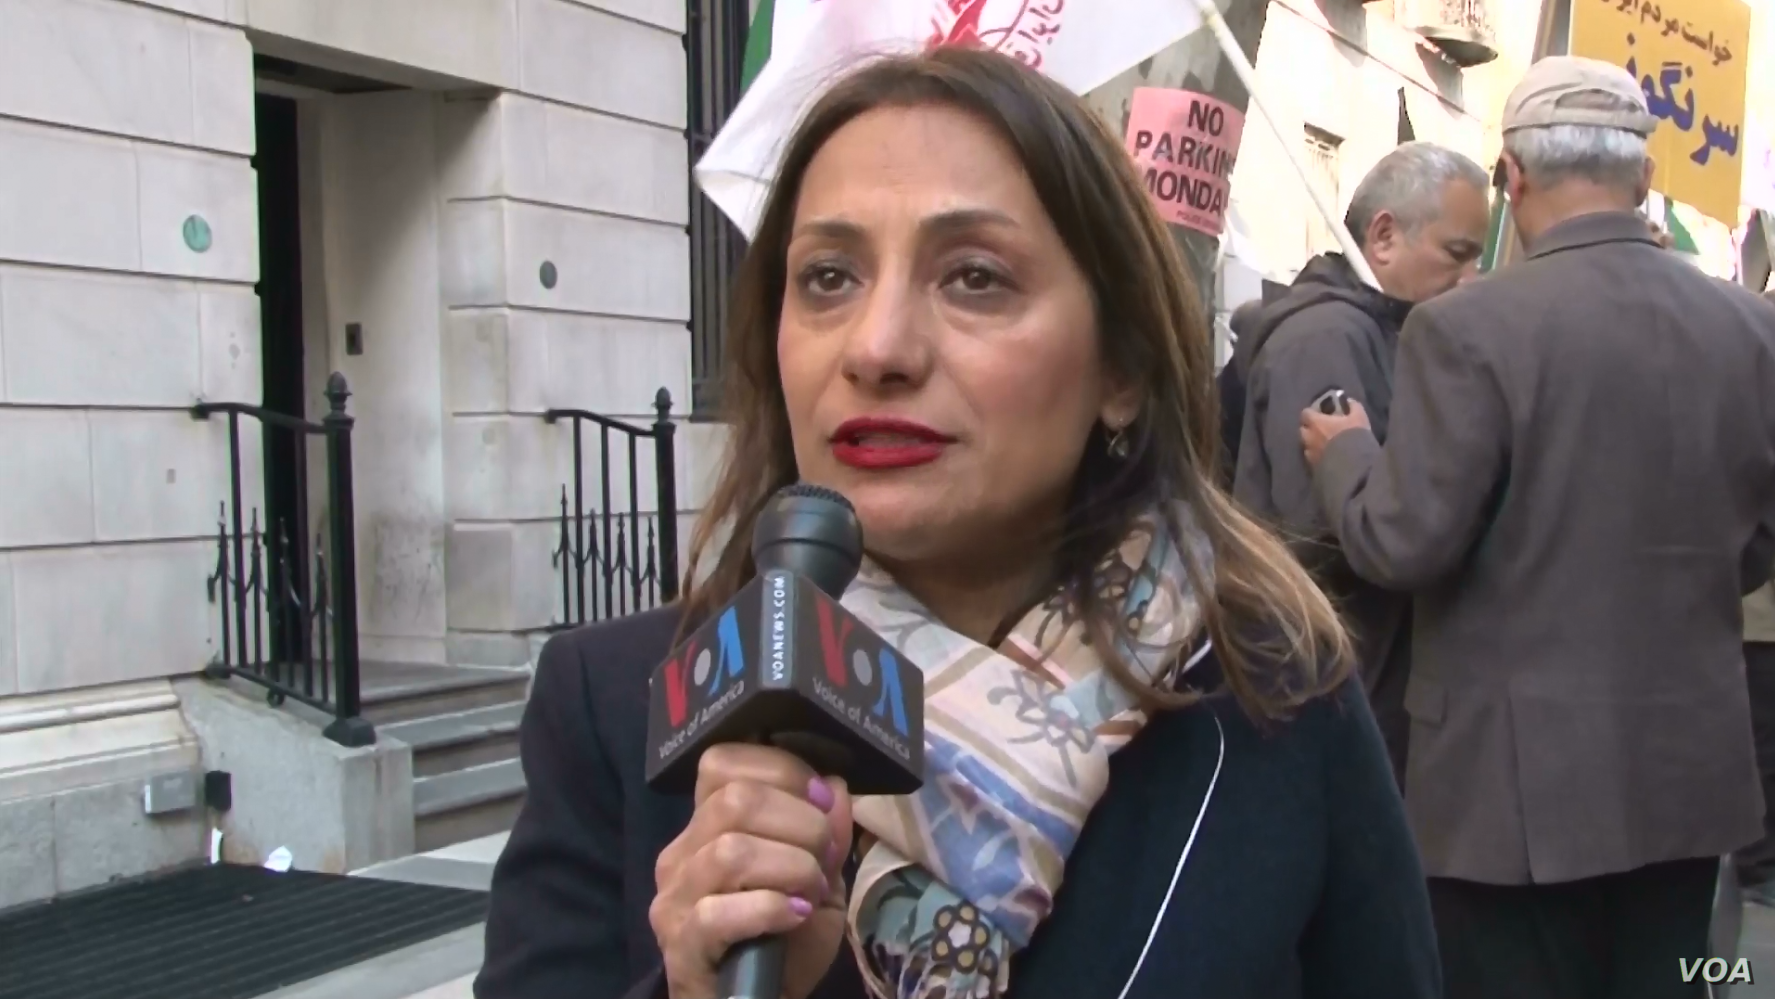 Shirin Nariman, organizer of the protest against Iranian Foreign Minister Mohammad Javad Zarif, speaks to VOA Persian in New York, April 23, 2018.